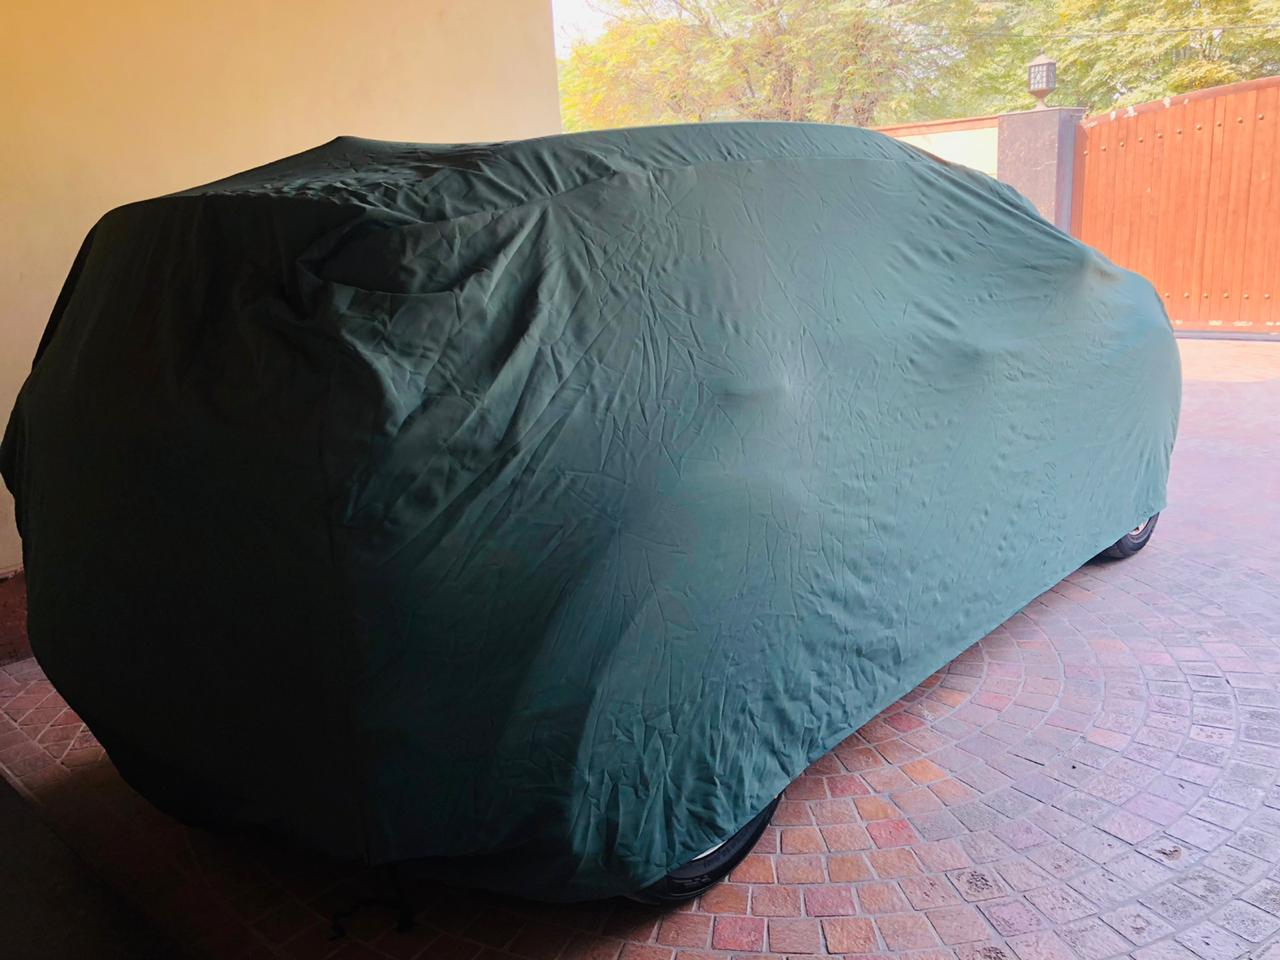 Toyota Celica Model 1996-2006 Parachute Car Top Cover